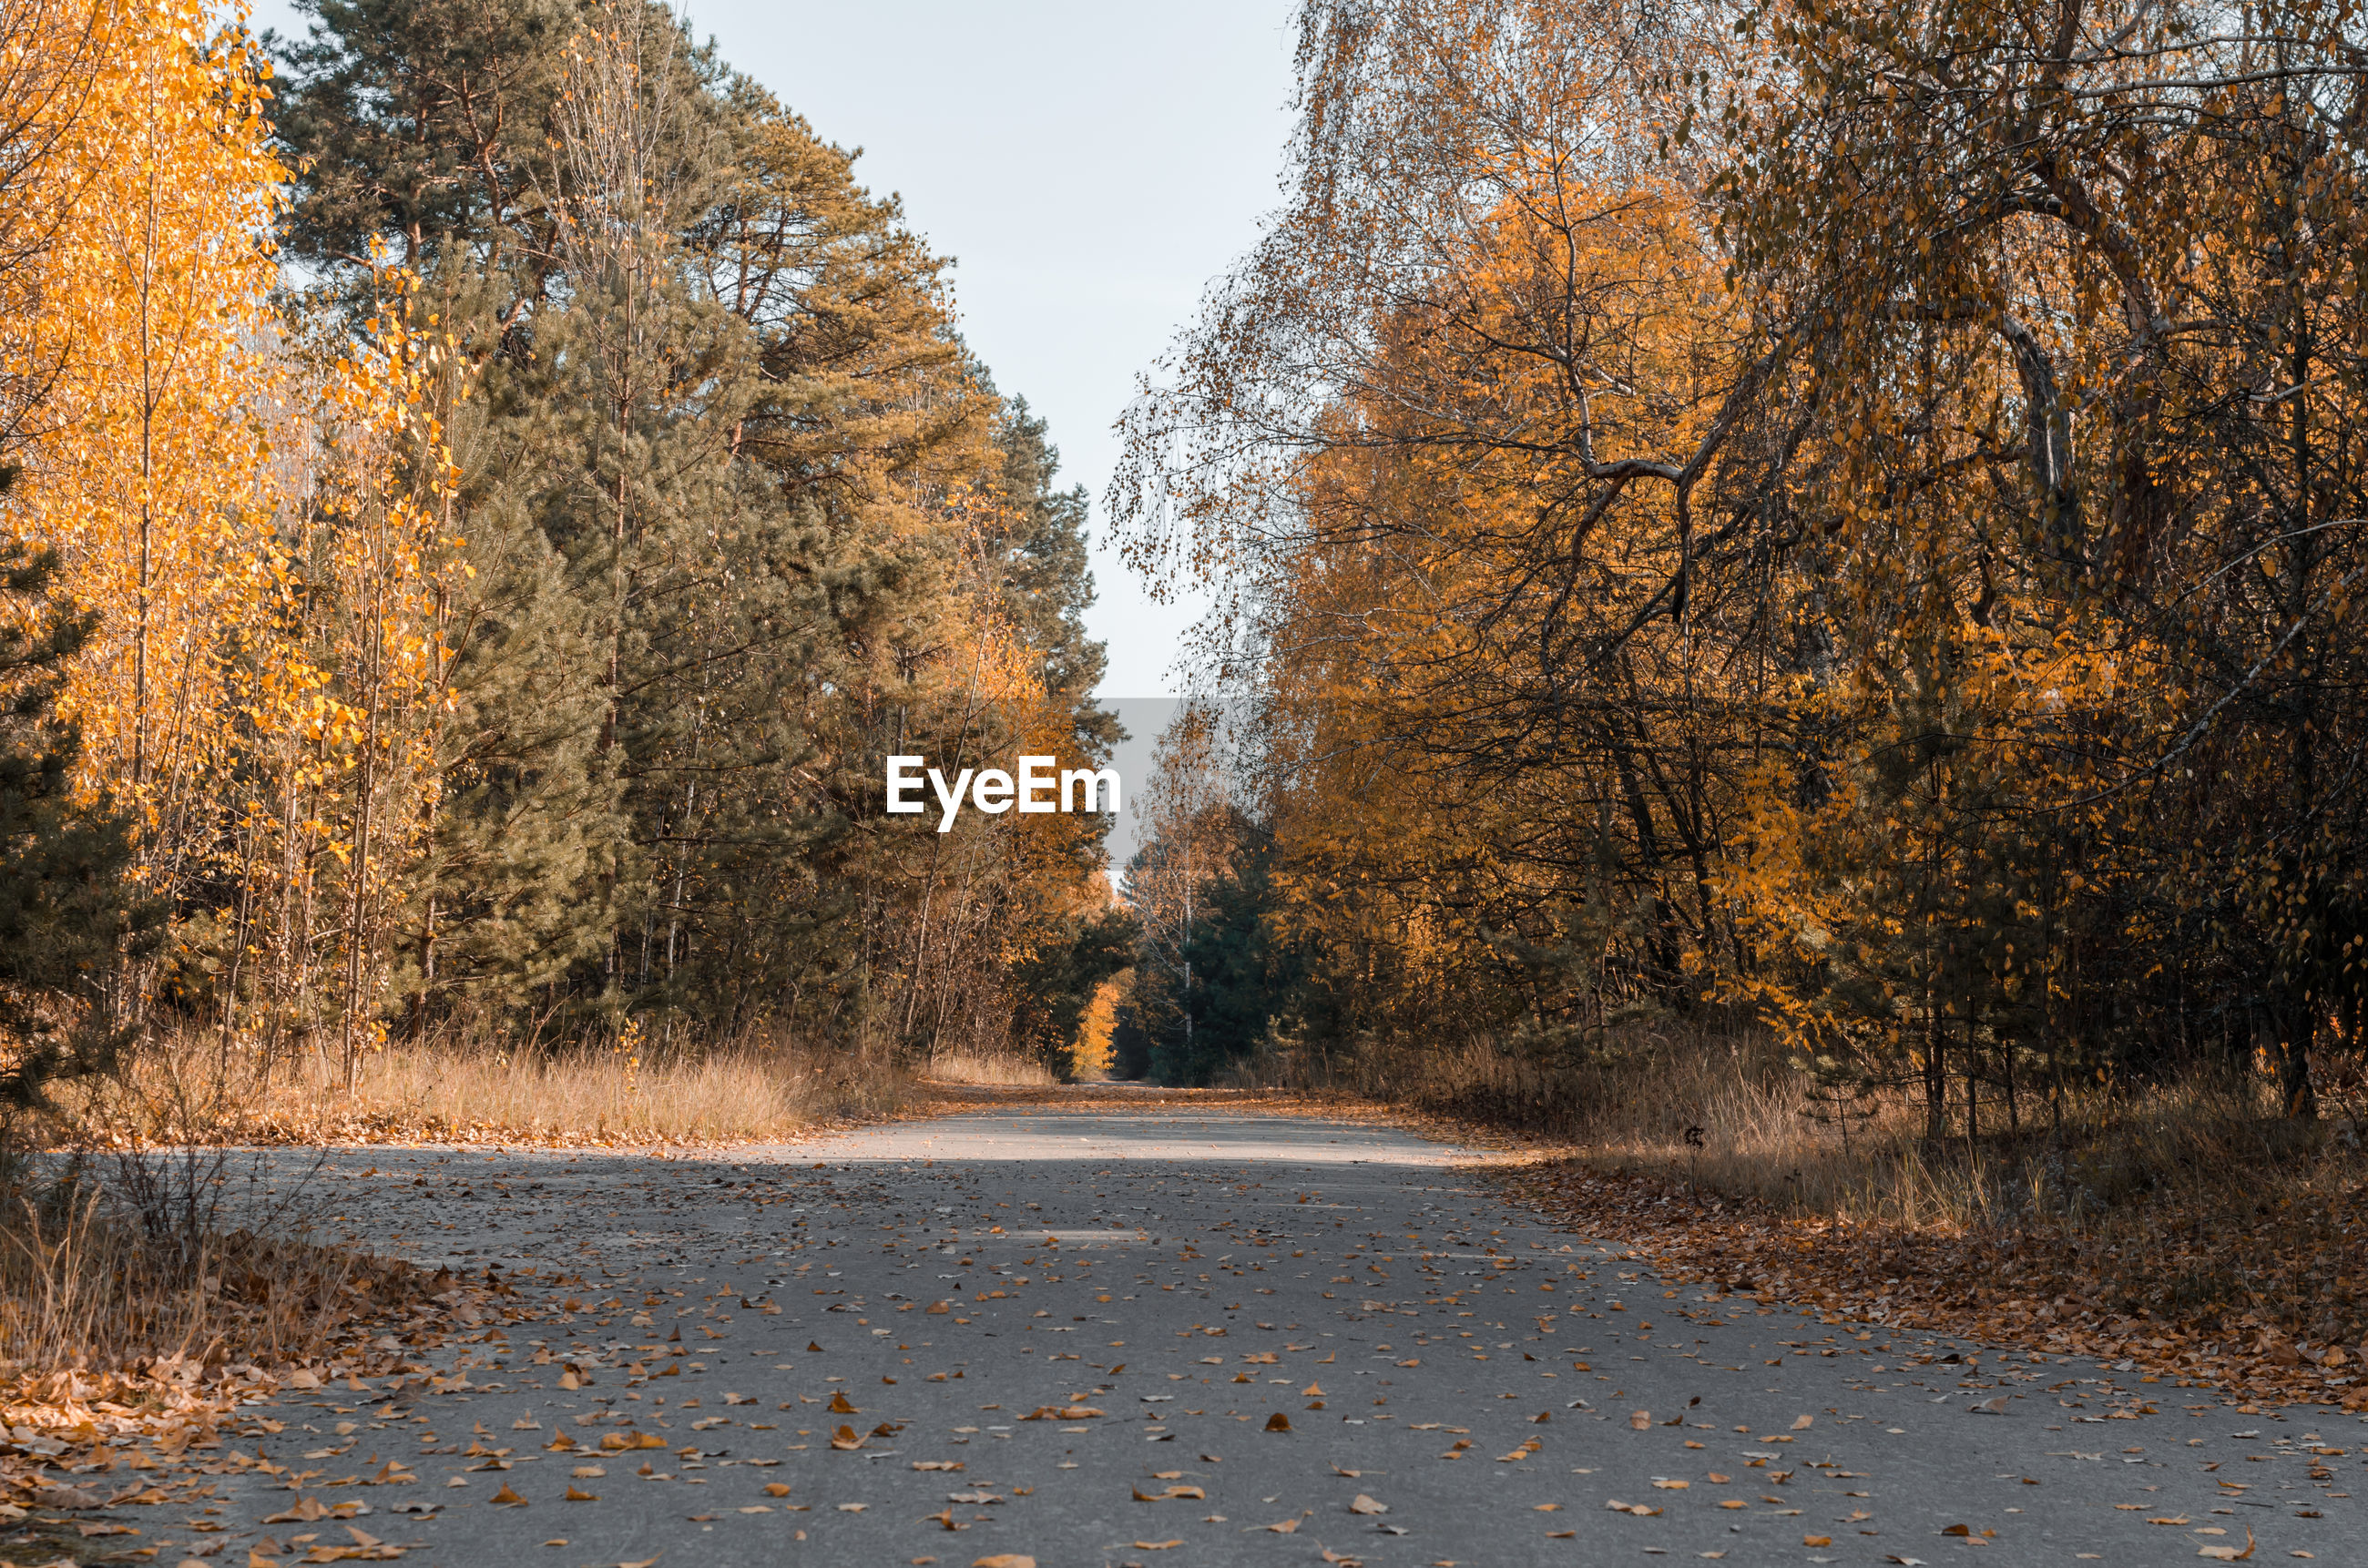 VIEW OF ROAD AMIDST TREES DURING AUTUMN